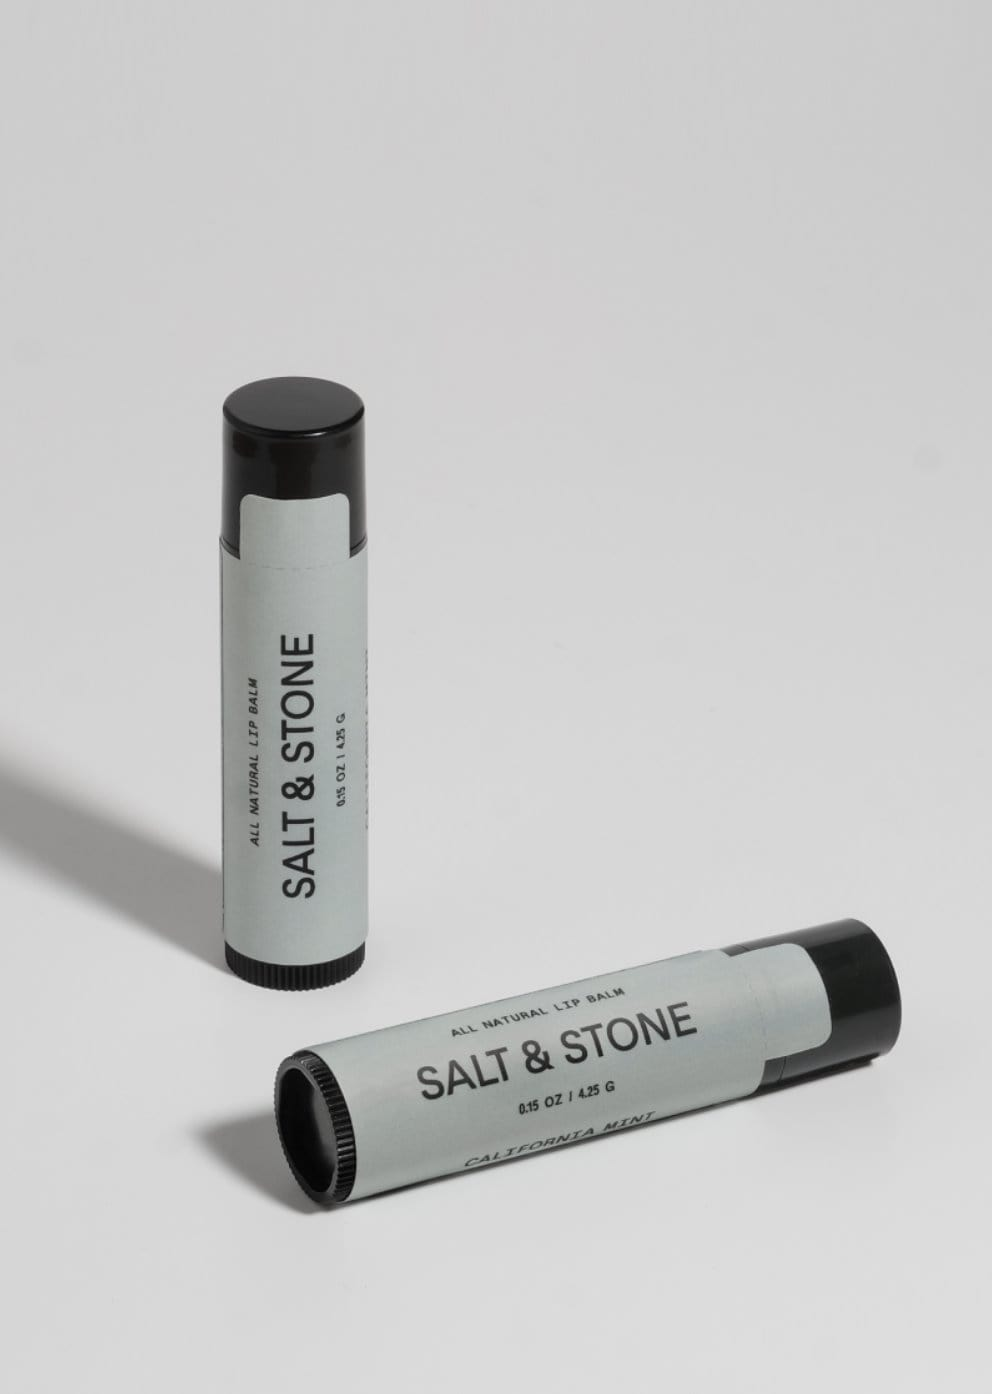 California Mint Lip Balm Salt & Stone